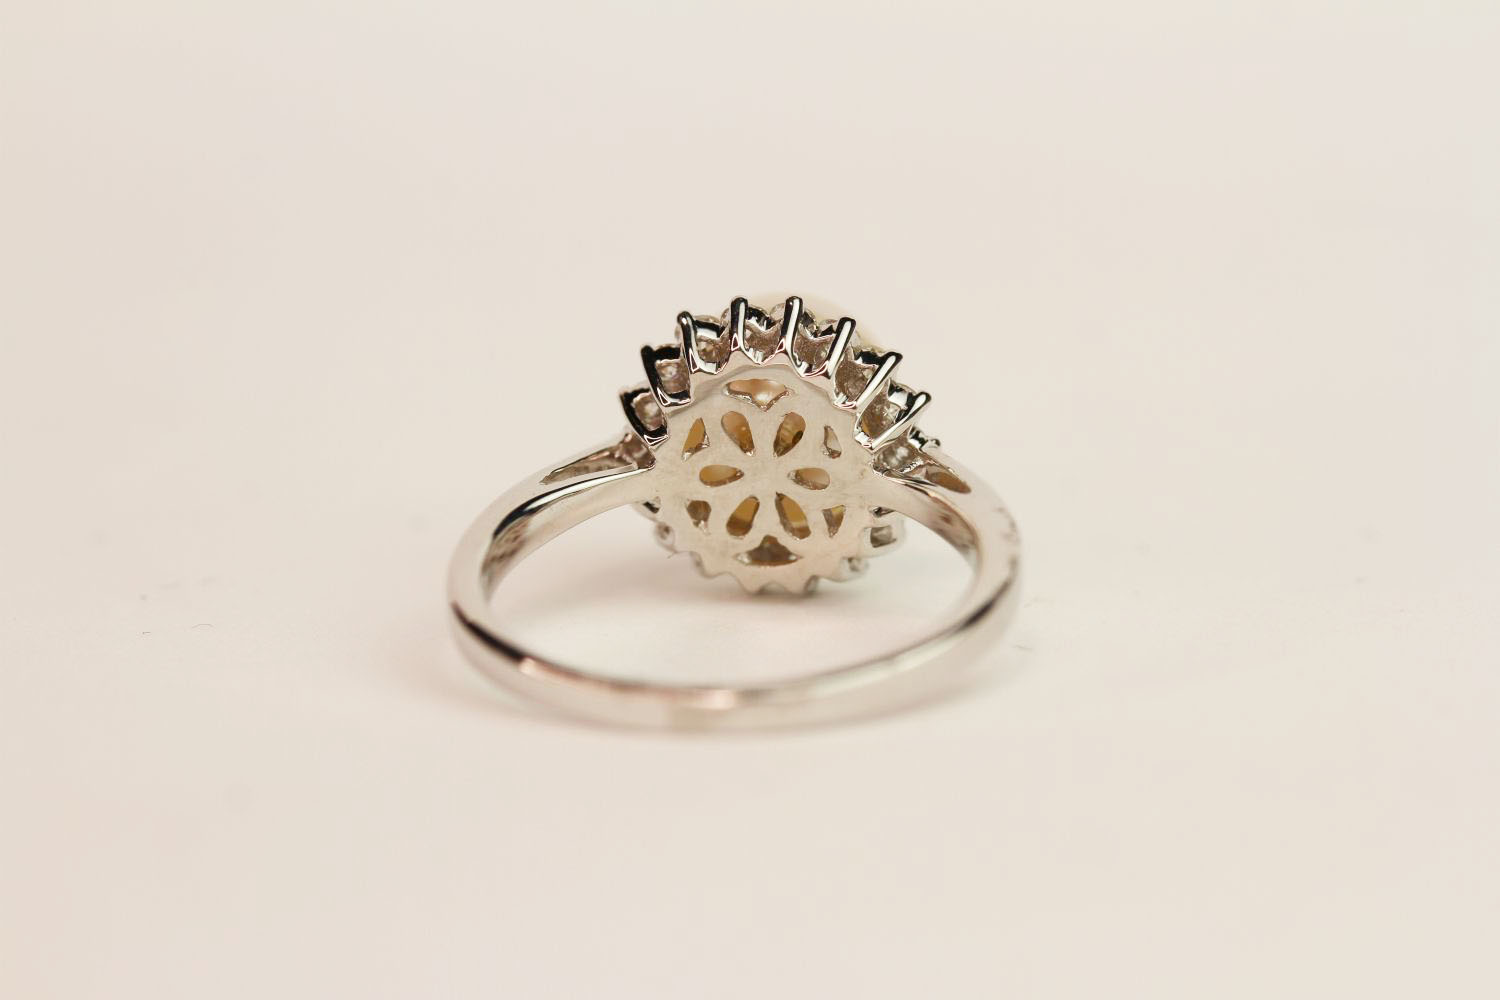 9ct white gold pearl and diamond halo ring. Diamonds 0.37ct, ring size N1/2. - Image 3 of 3